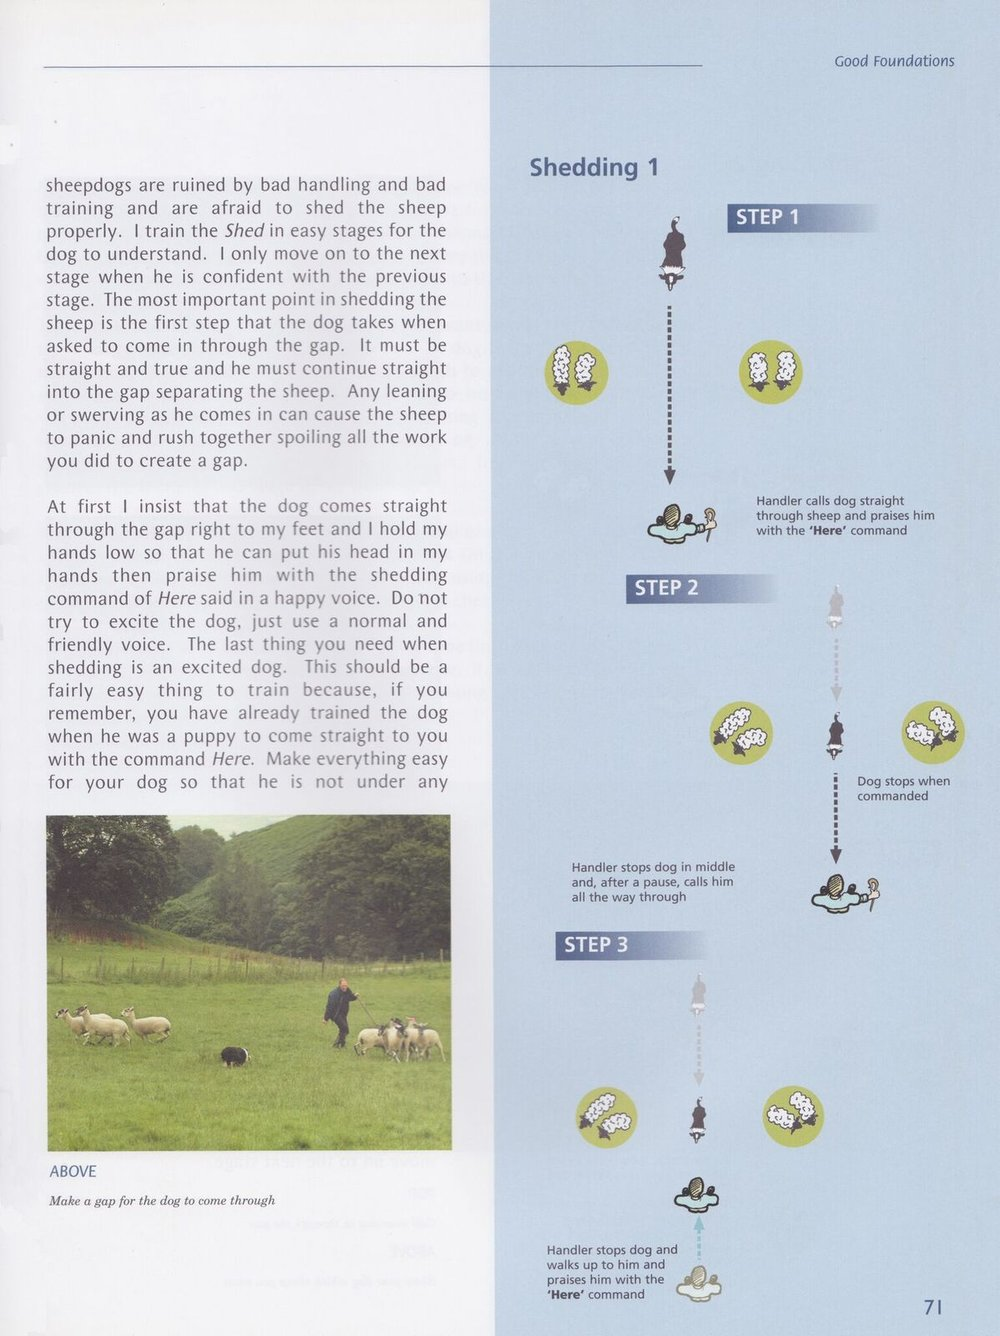 Talking sheep dogs page